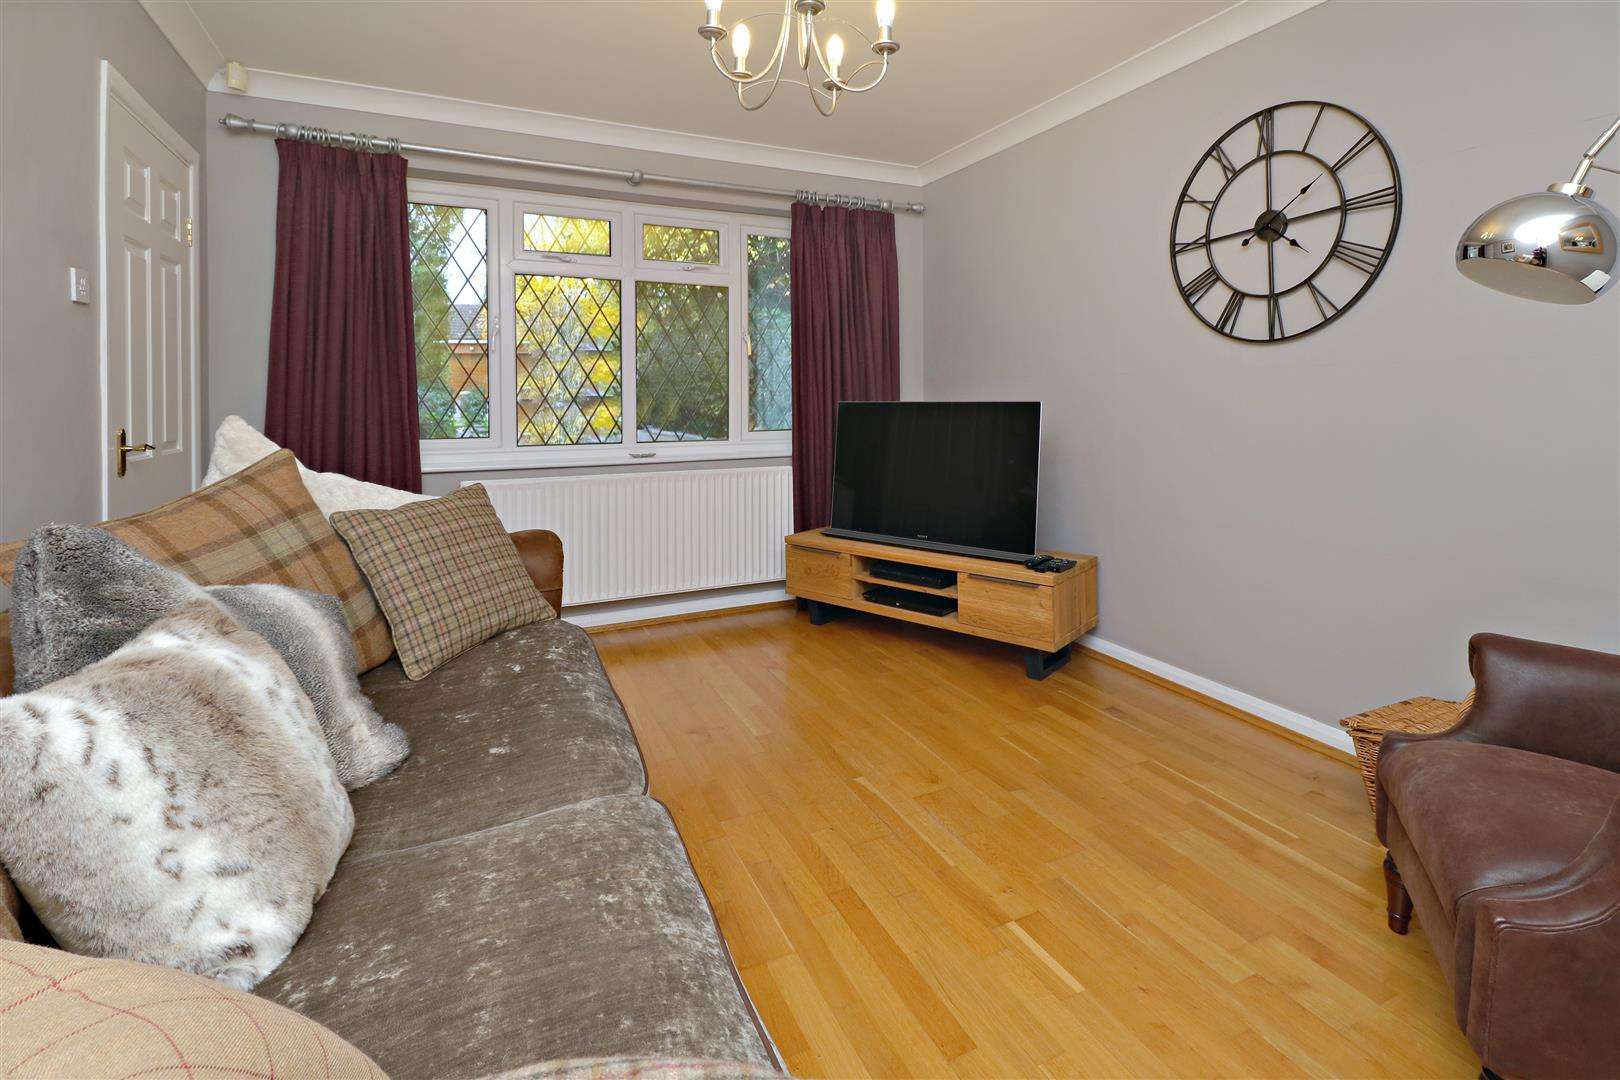 5 bed for sale - (Property Image 6)